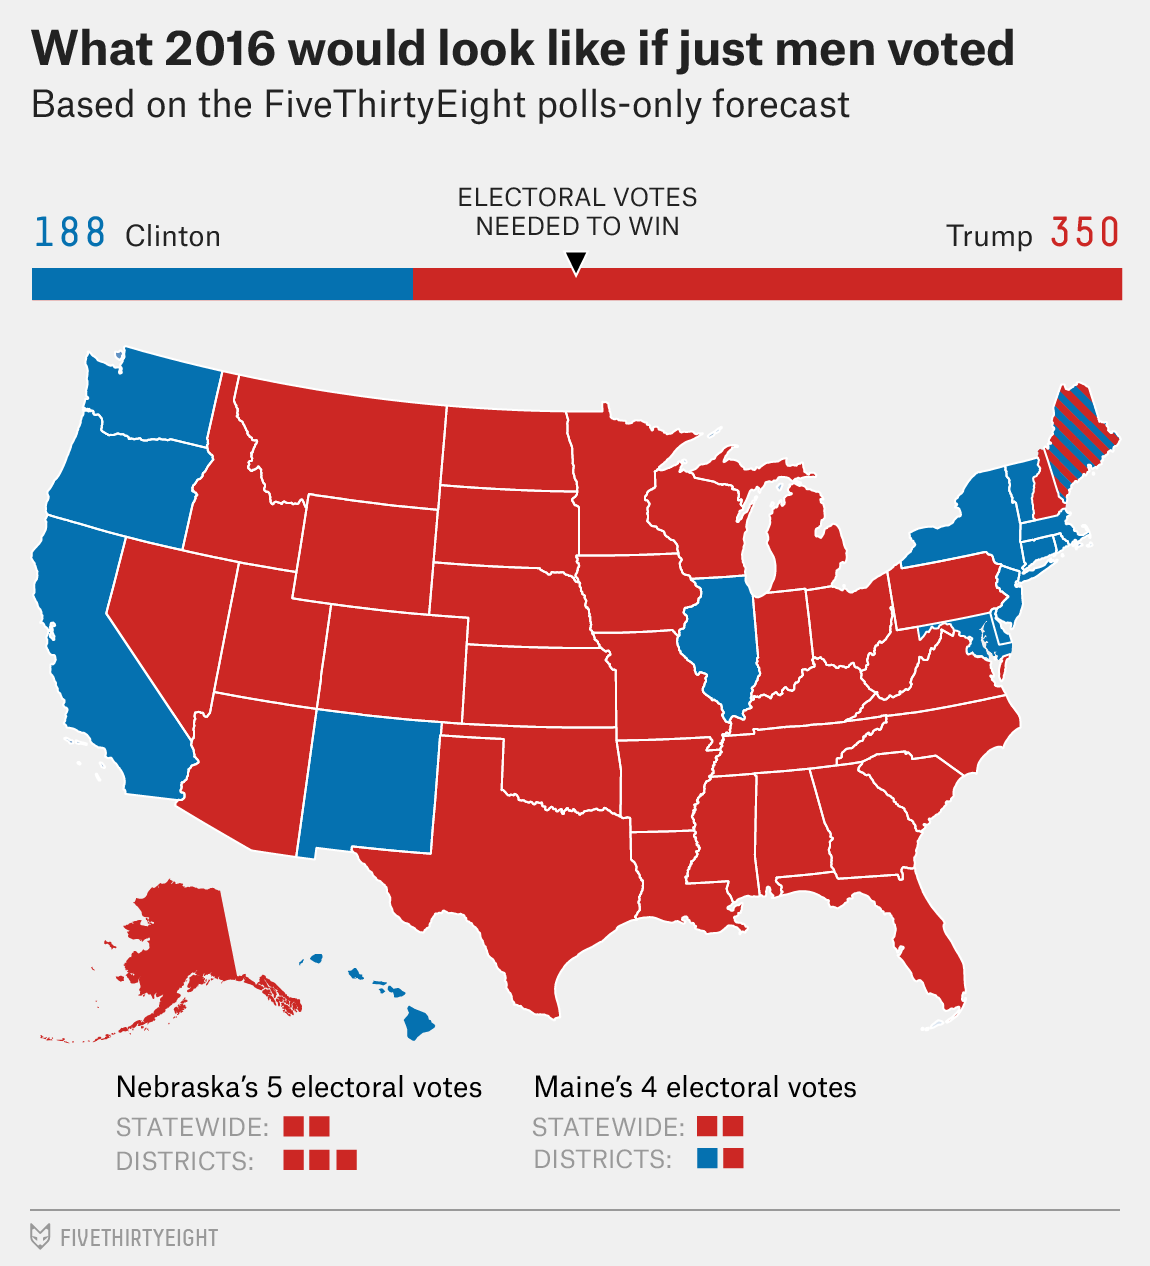 If Only Men Voted In The 2016 Us Presidential Election Survival - Voting-map-2016-us